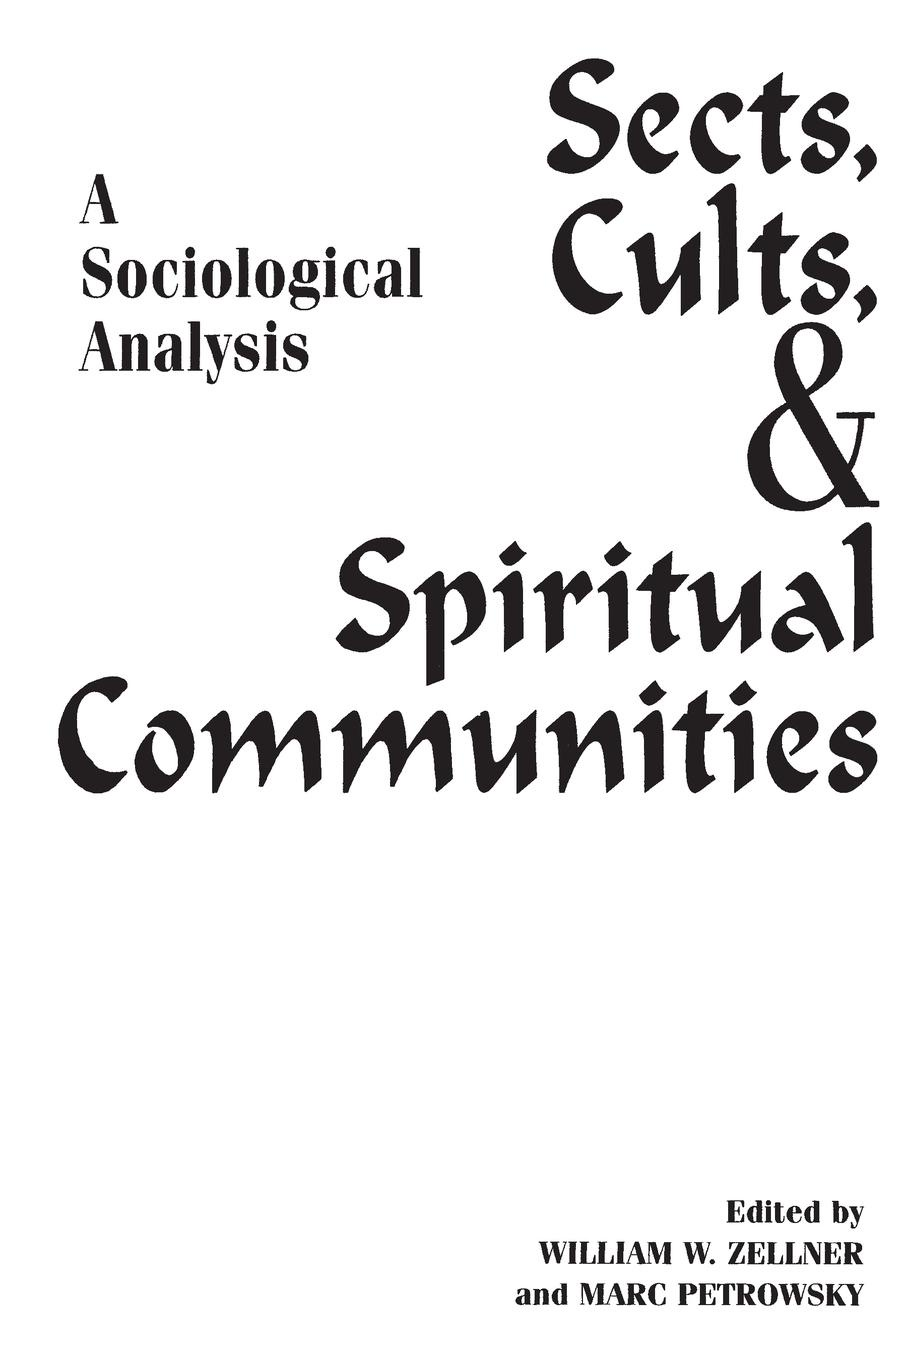 Marc Petrowsky, William Zellner Sects, Cults, and Spiritual Communities. A Sociological Analysis larry a nichols george a mather alvin j schmidt encyclopedic dictionary of cults sects and world religions